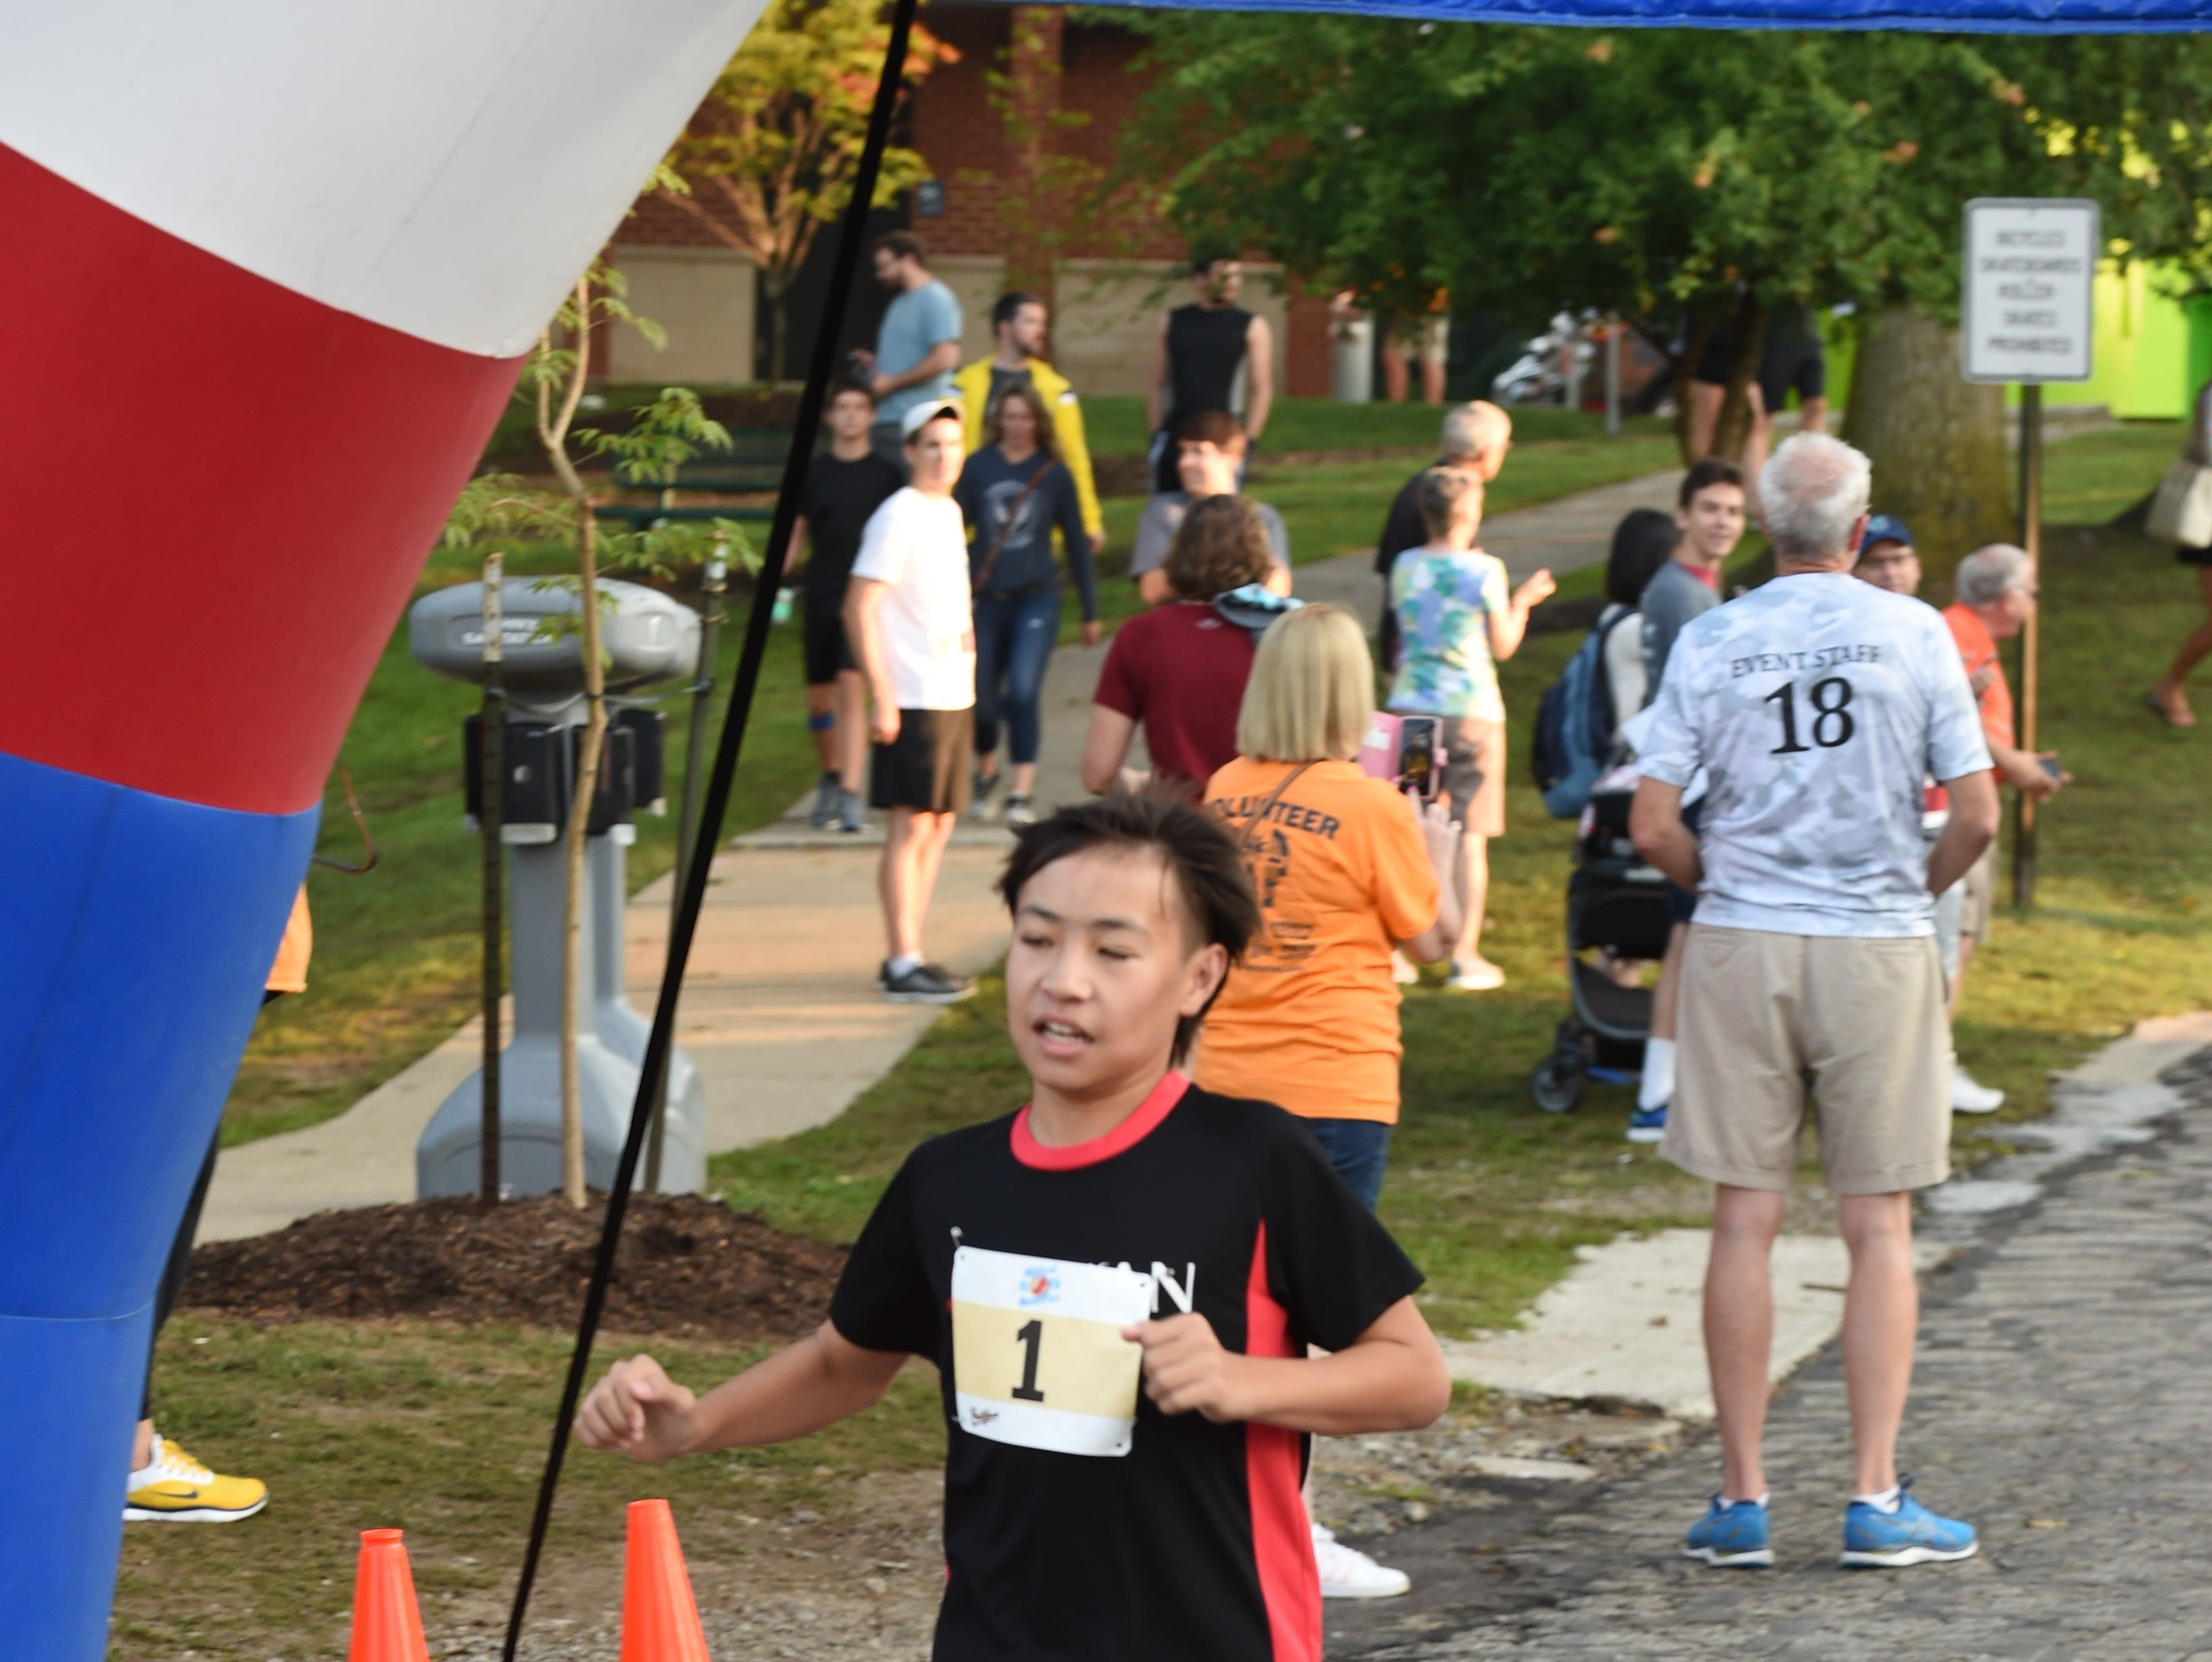 Kazuki Teuber from Kyoto, Japan, comes in first in the 1K run during Milford Memories.